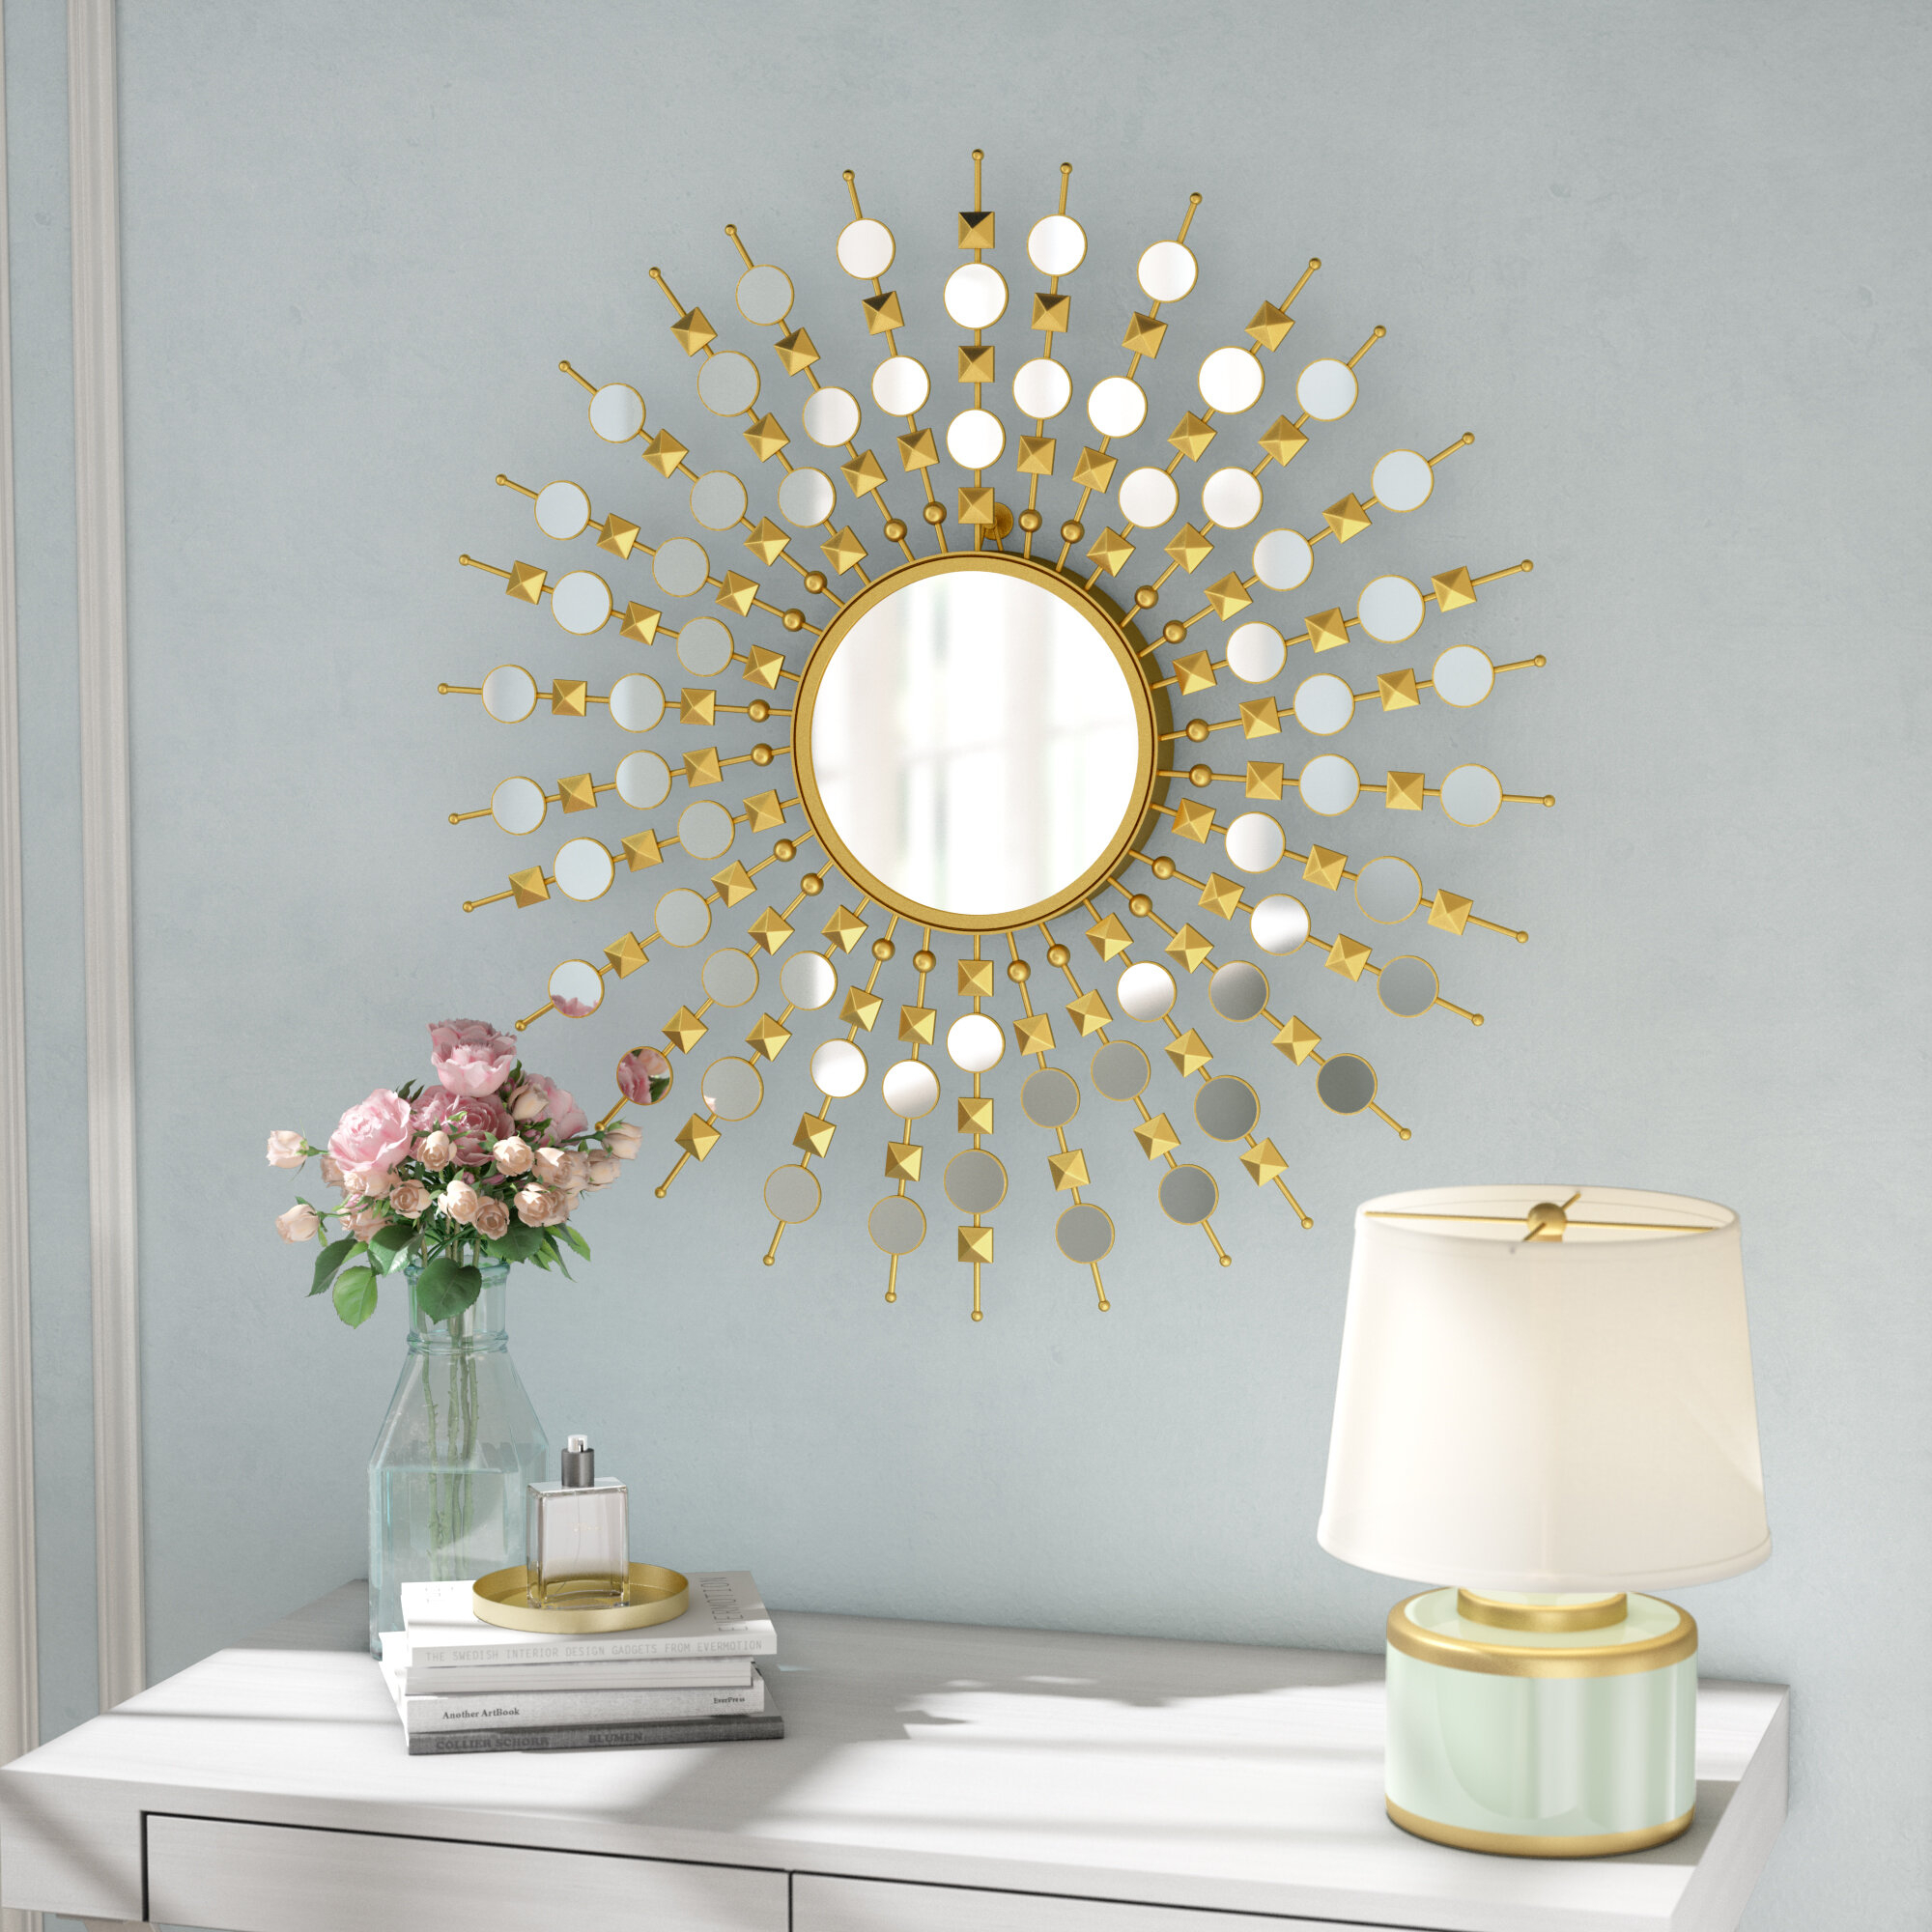 Starburst Wall Decor By Willa Arlo Interiors Throughout Well Known Willa Arlo Interiors Jamain Traditional Round Sunburst Frame Mirror (Gallery 17 of 20)